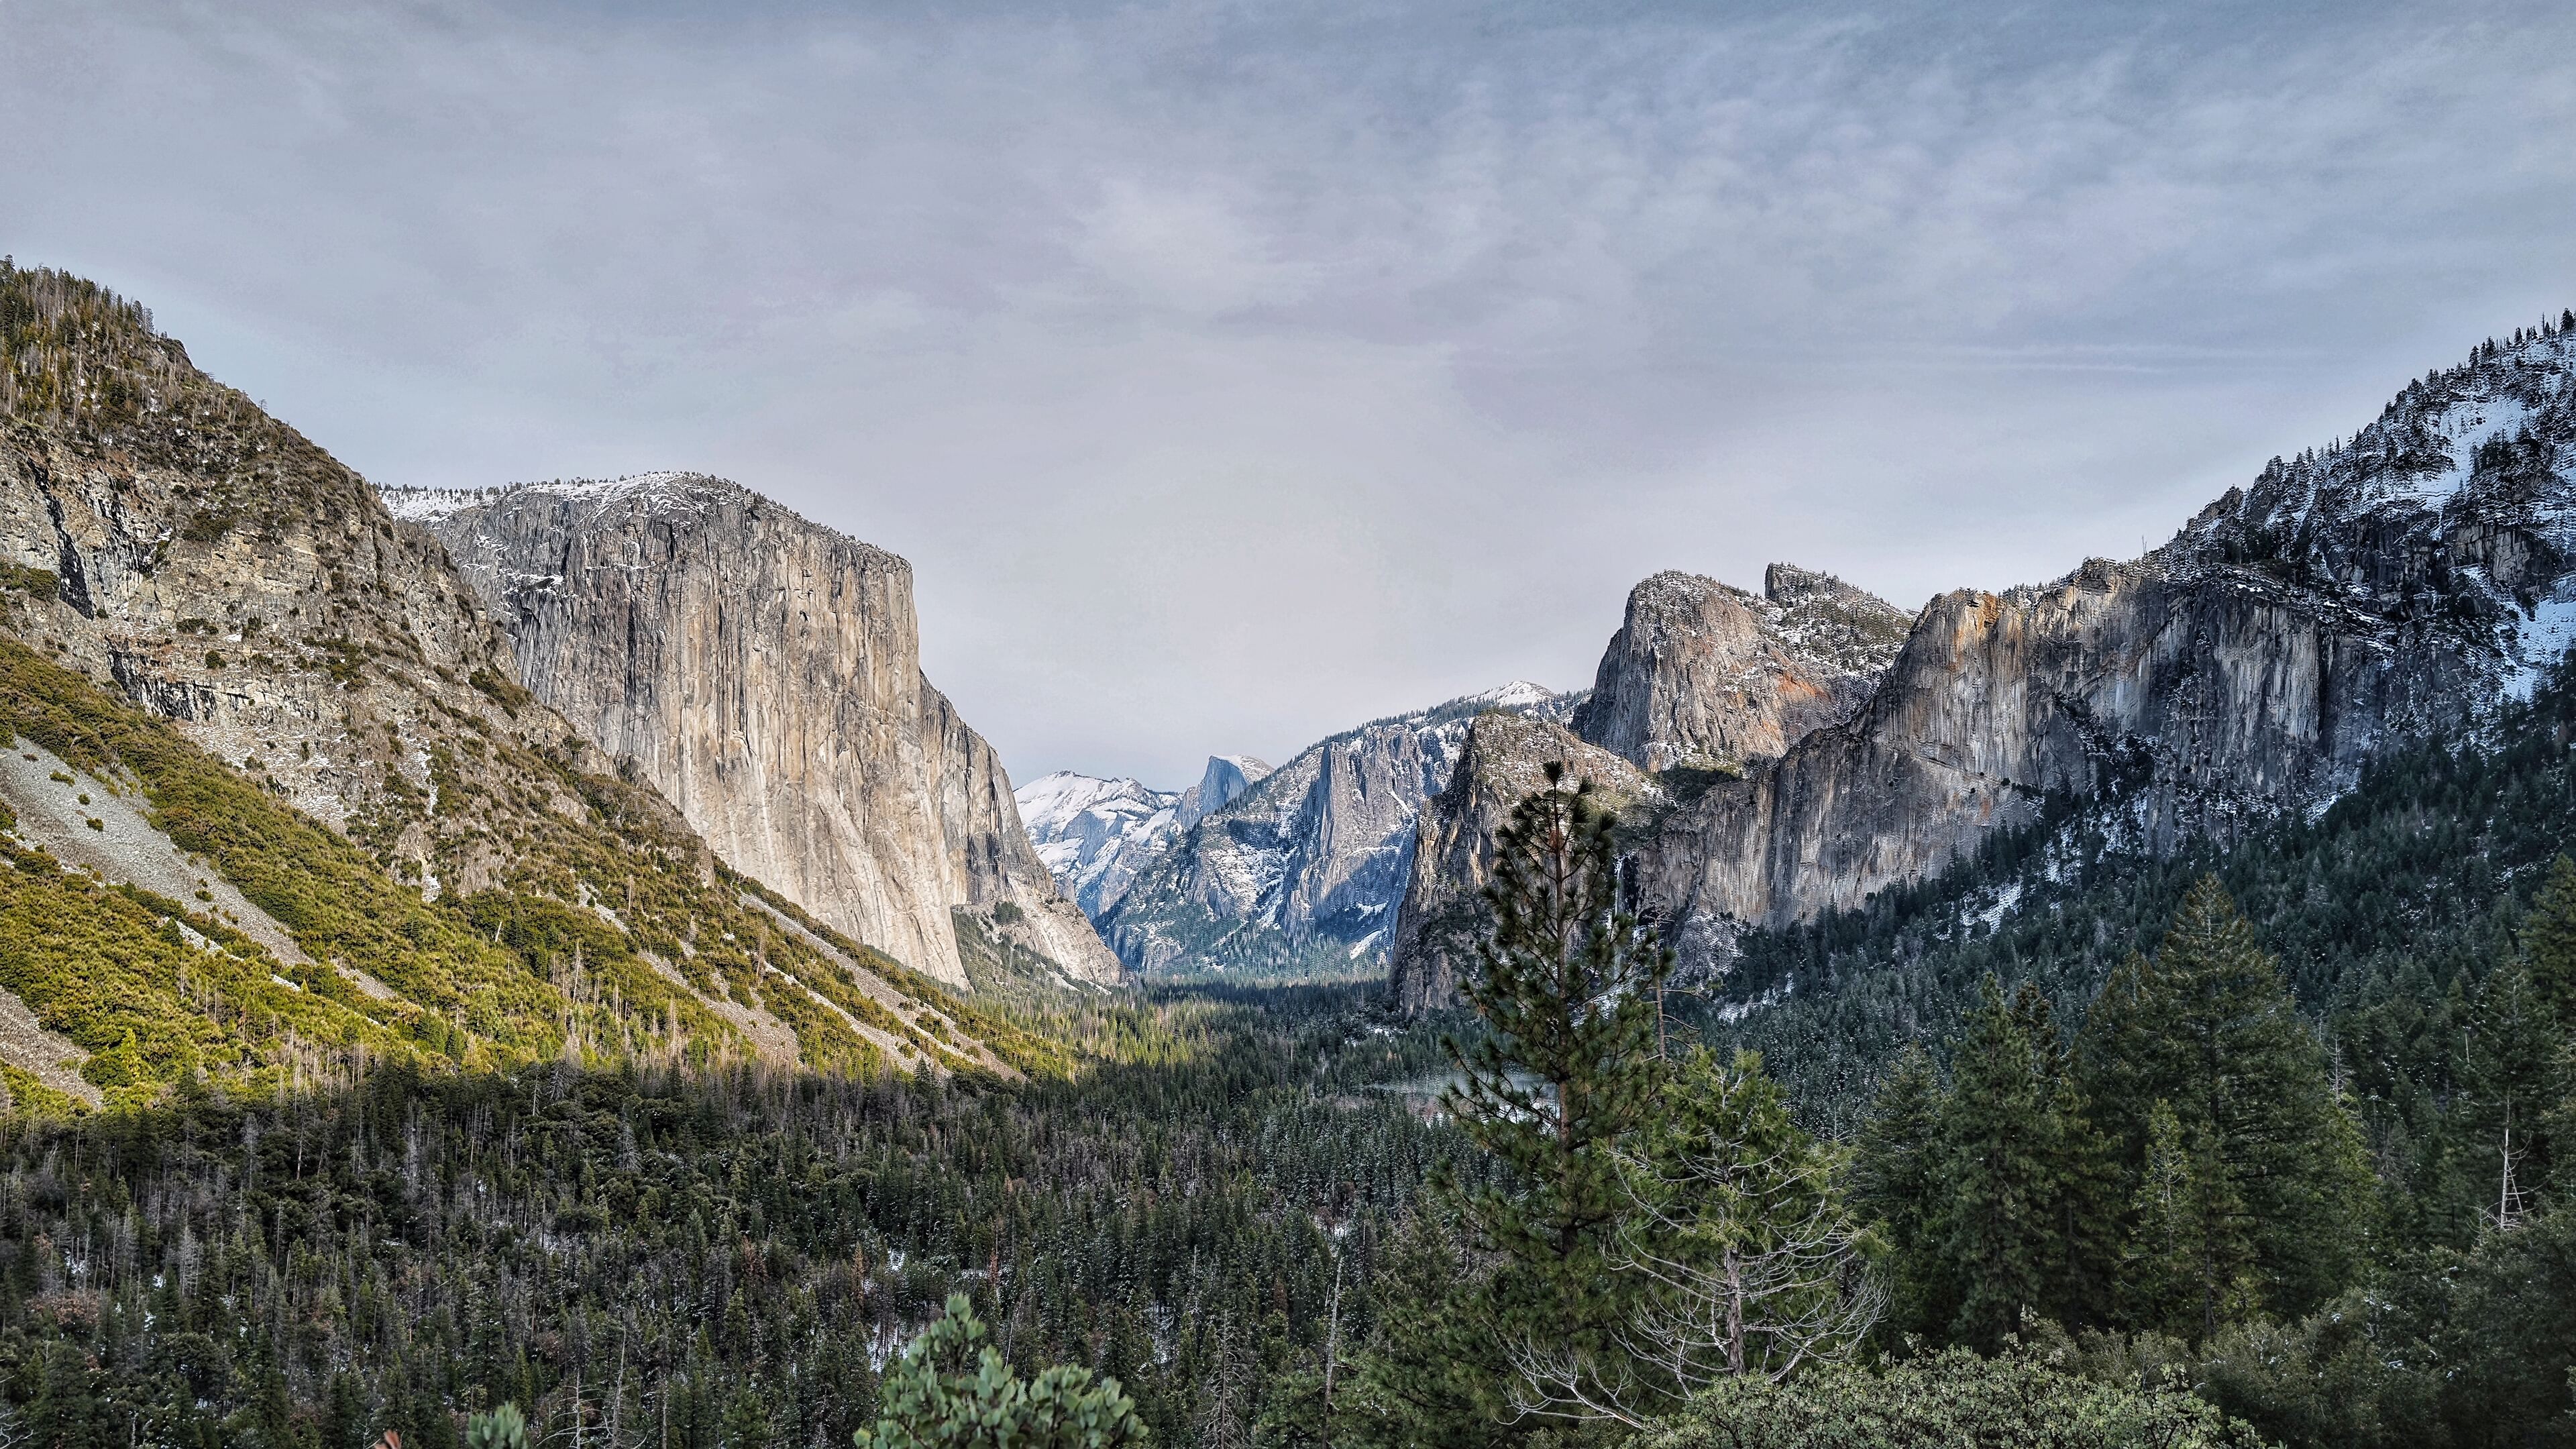 Yosemite 4K wallpapers for your desktop or mobile screen and 3840x2160